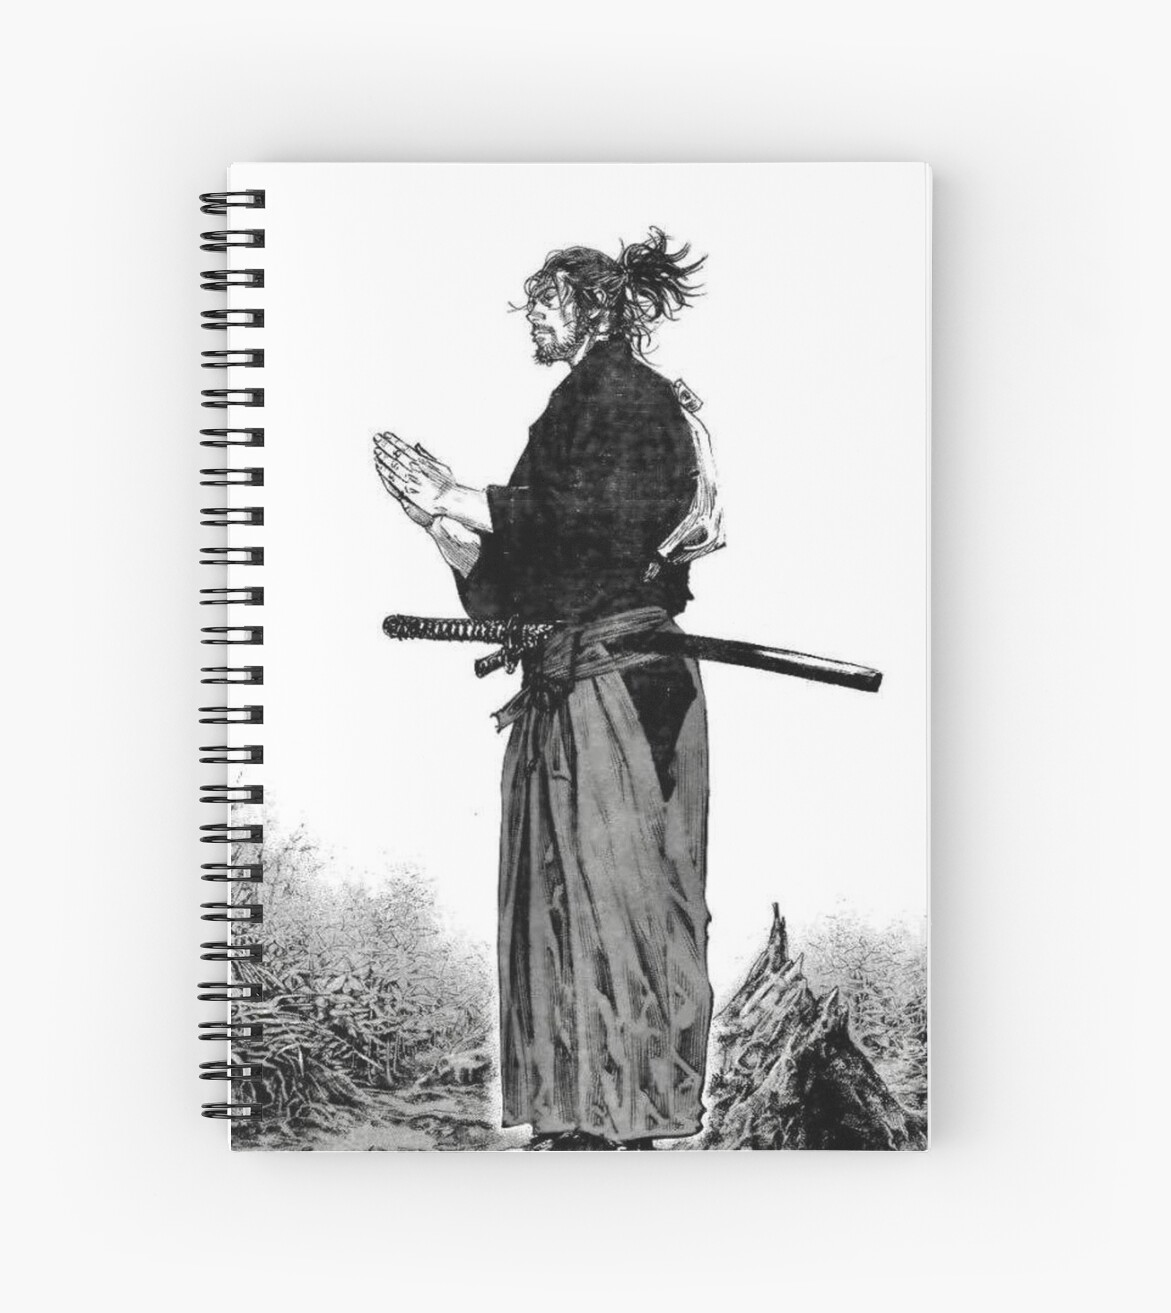 Manga Samurai Spiral Notebooks By Jiggymiggy